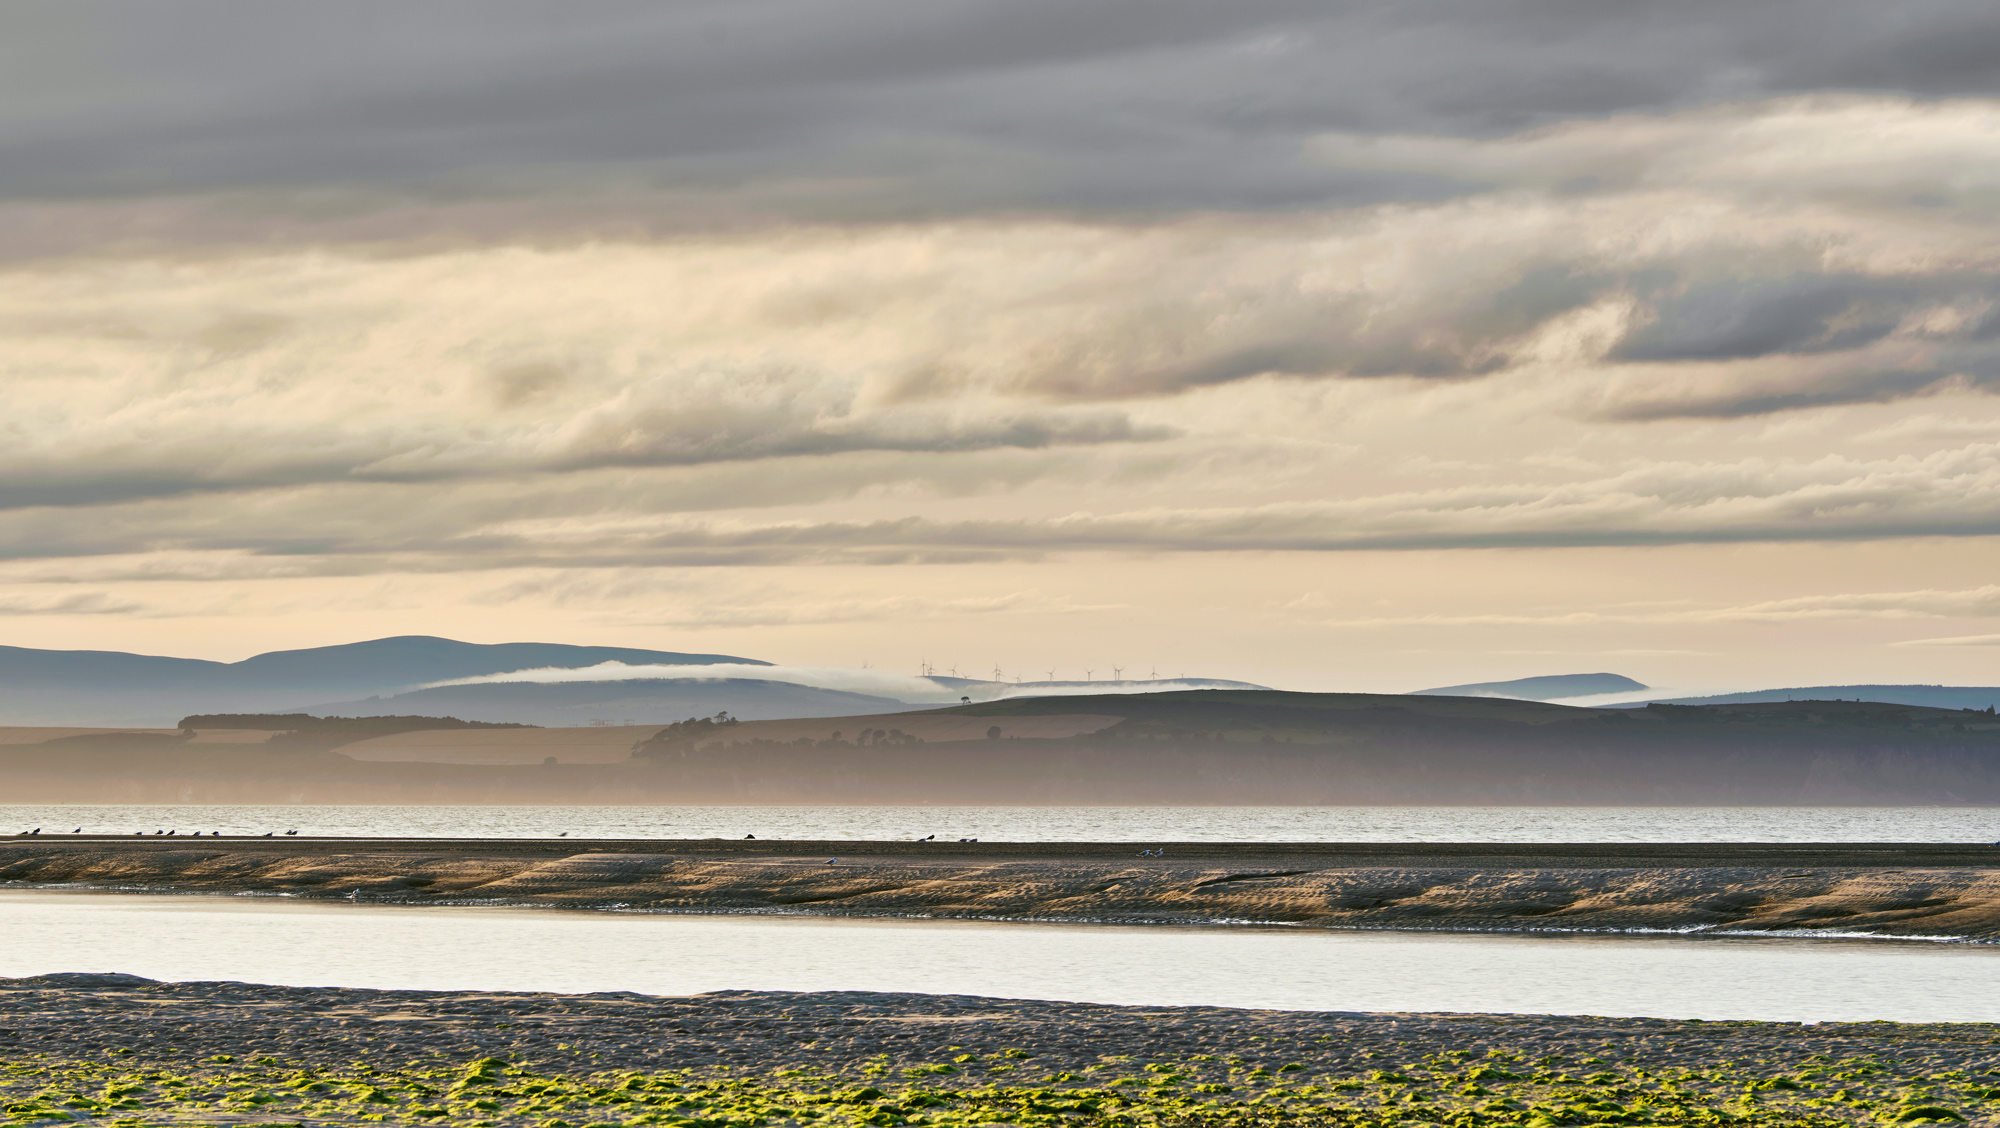 A layered composition of warm summer evening light forming over the Moray Firth and The Maggot near the Highland town of Nairn.